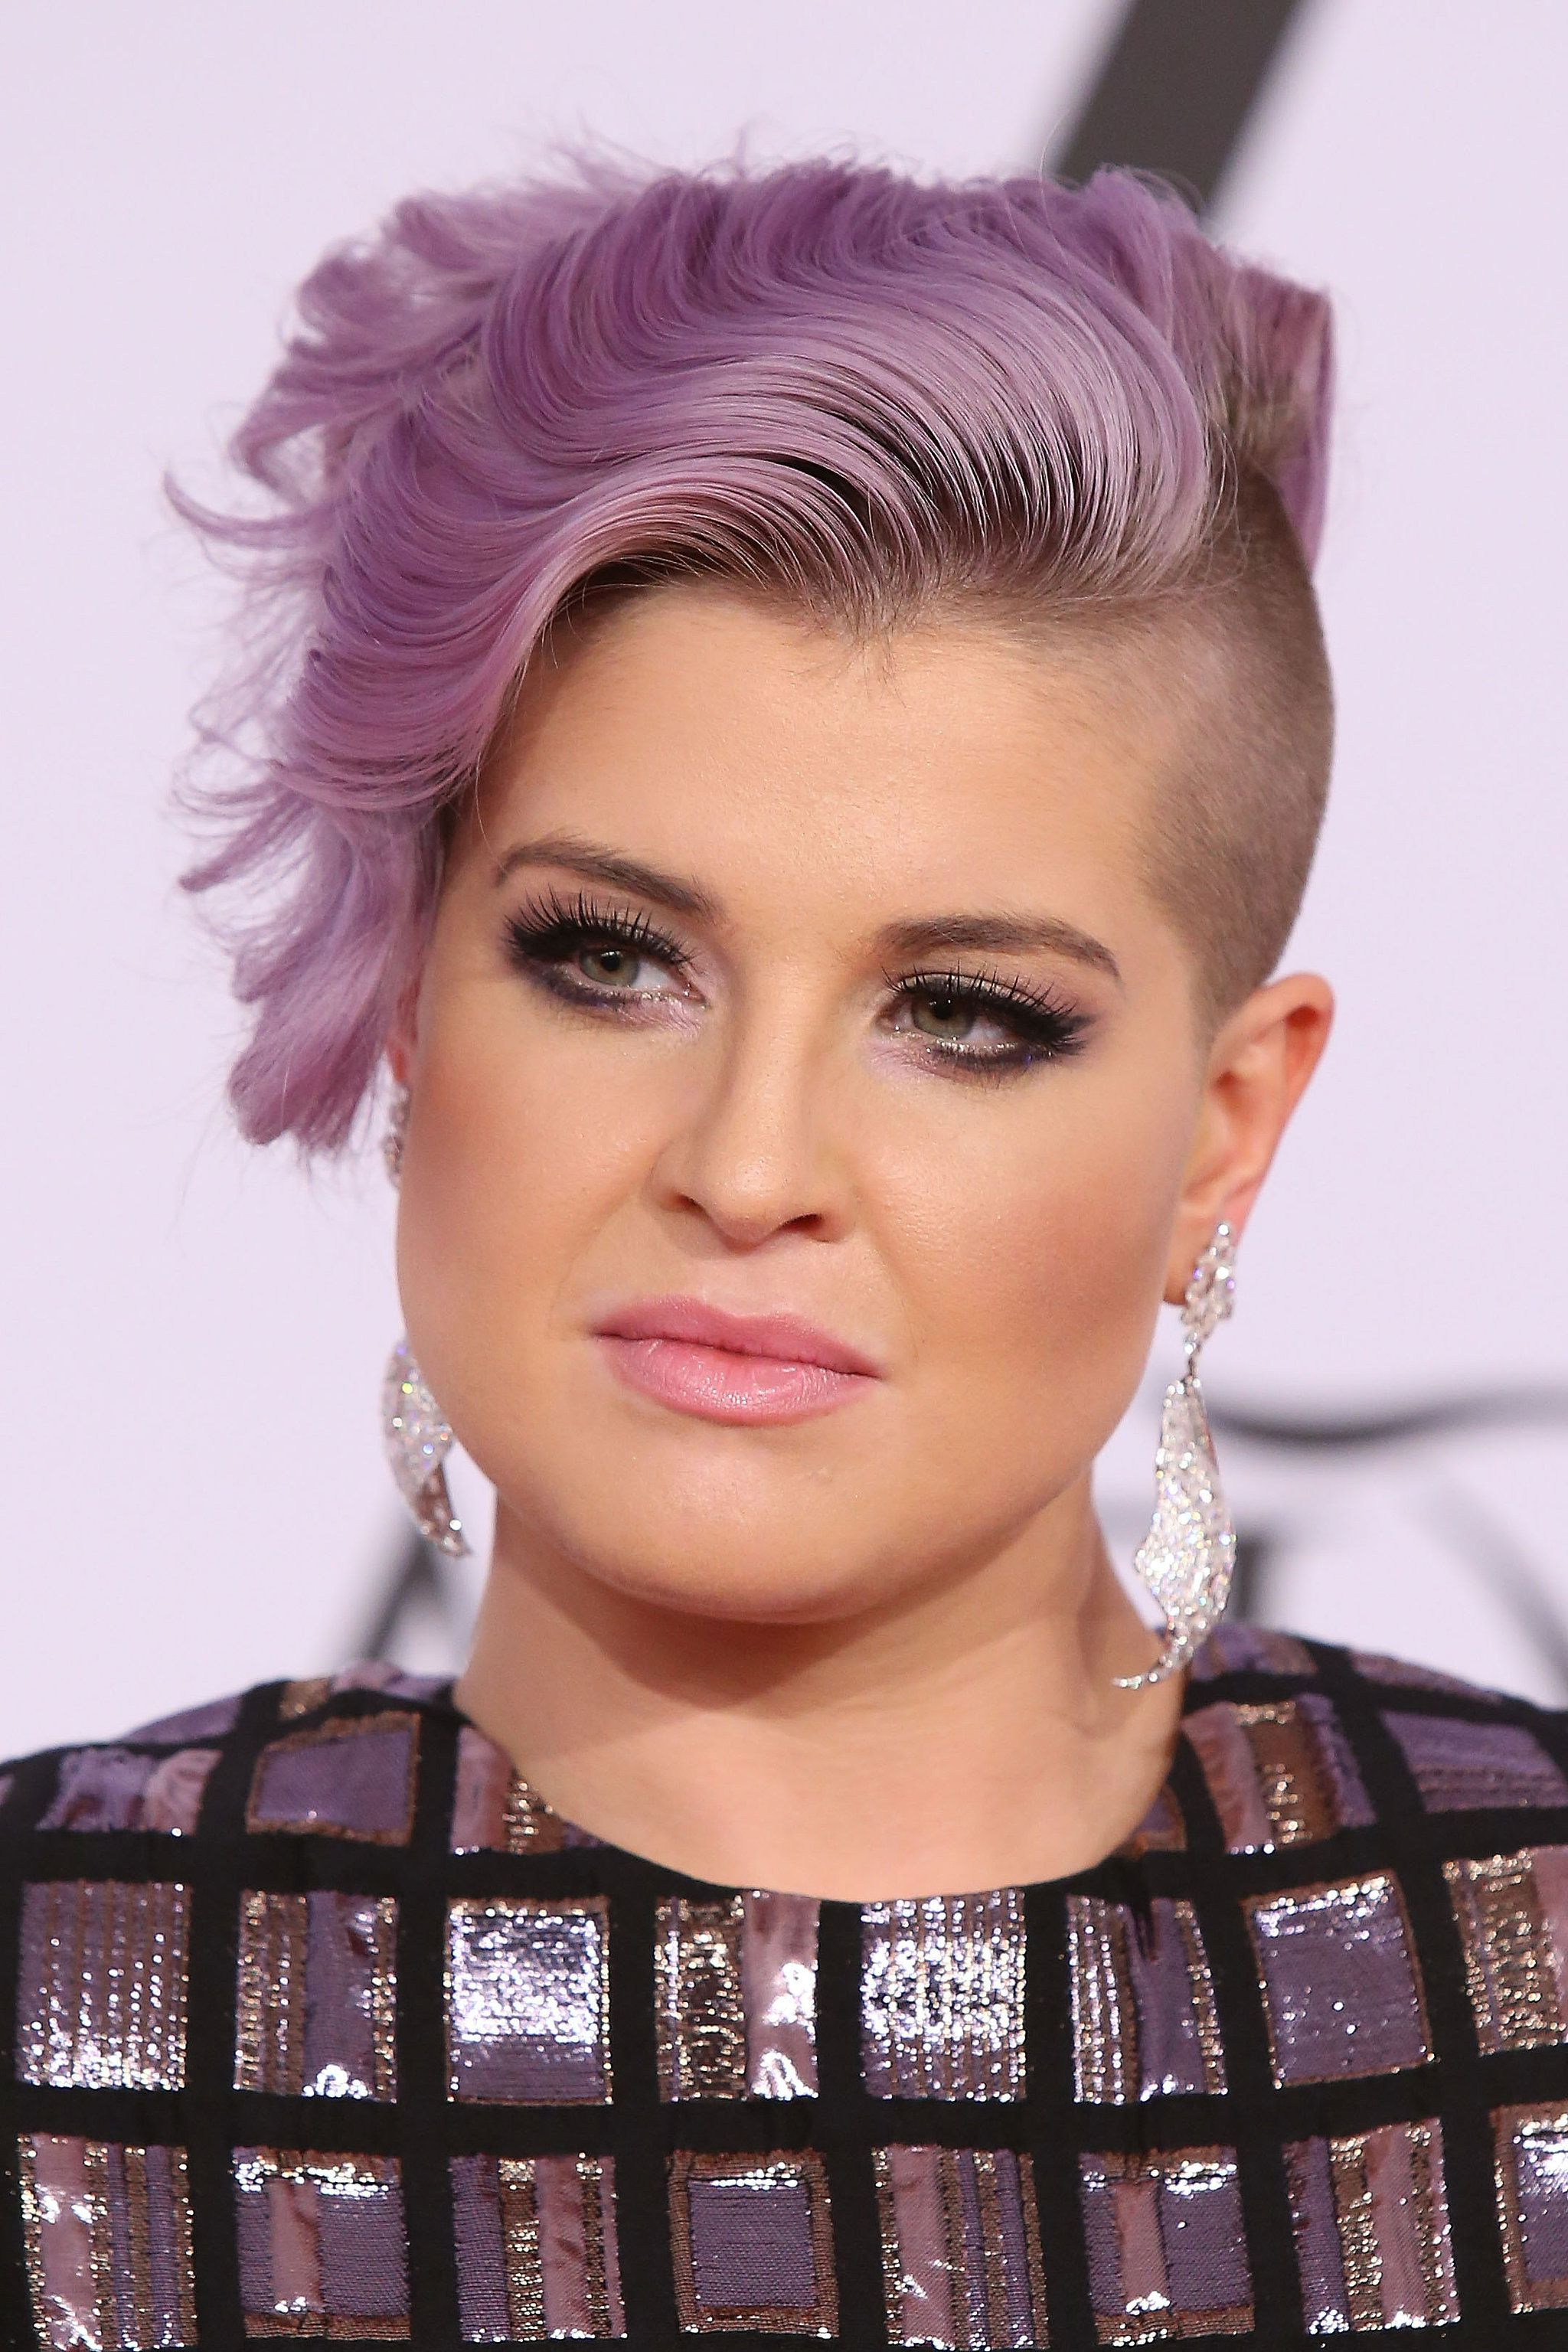 Kelly Osbourne | Alright, Mr (View 21 of 25)